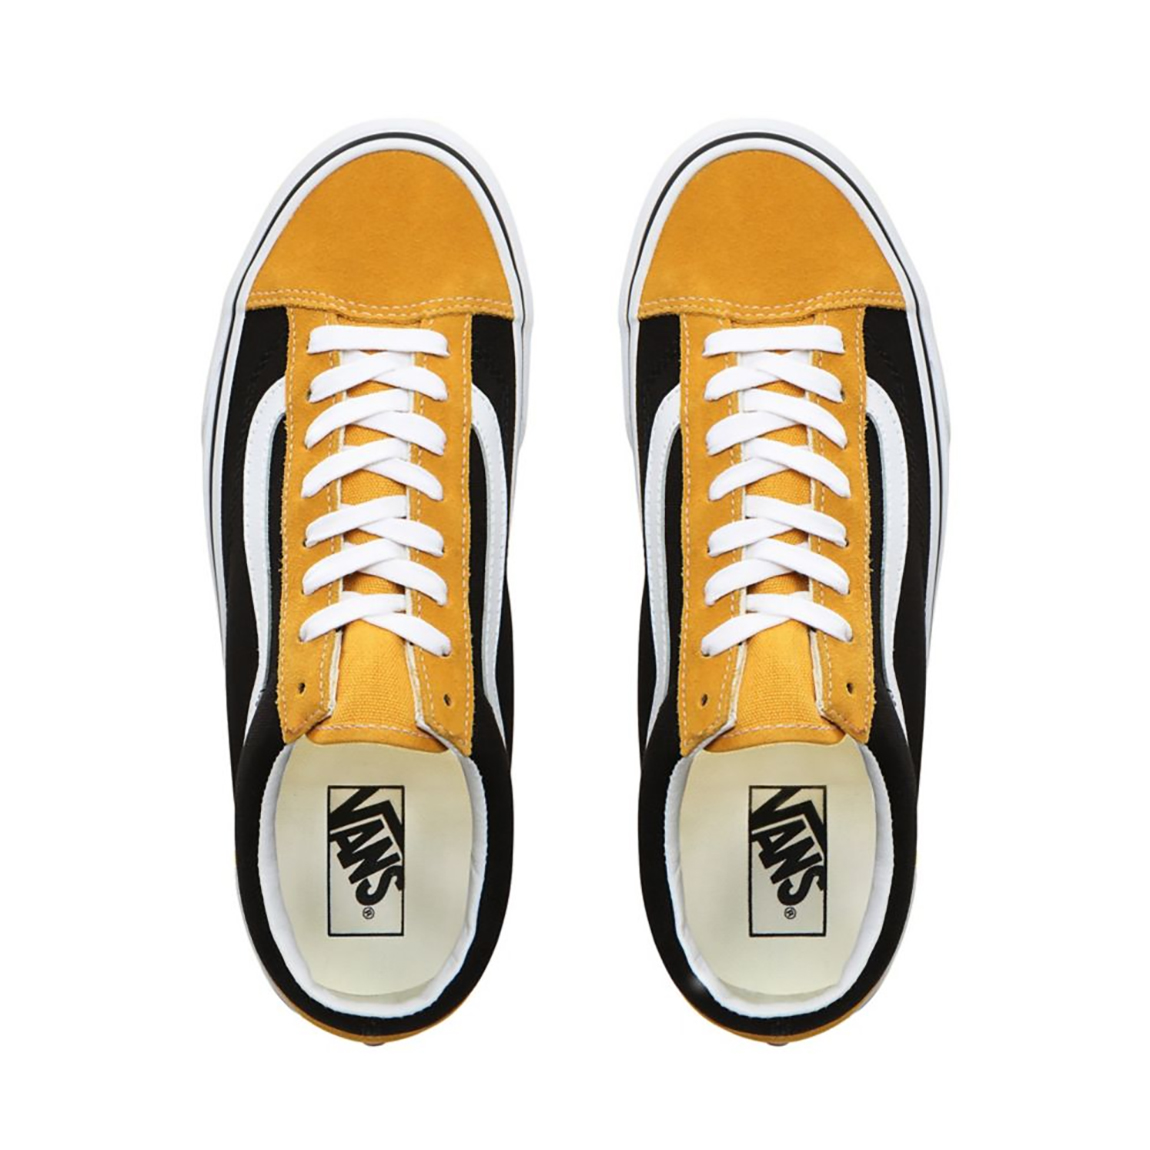 Vans Style 36 Trainers available from